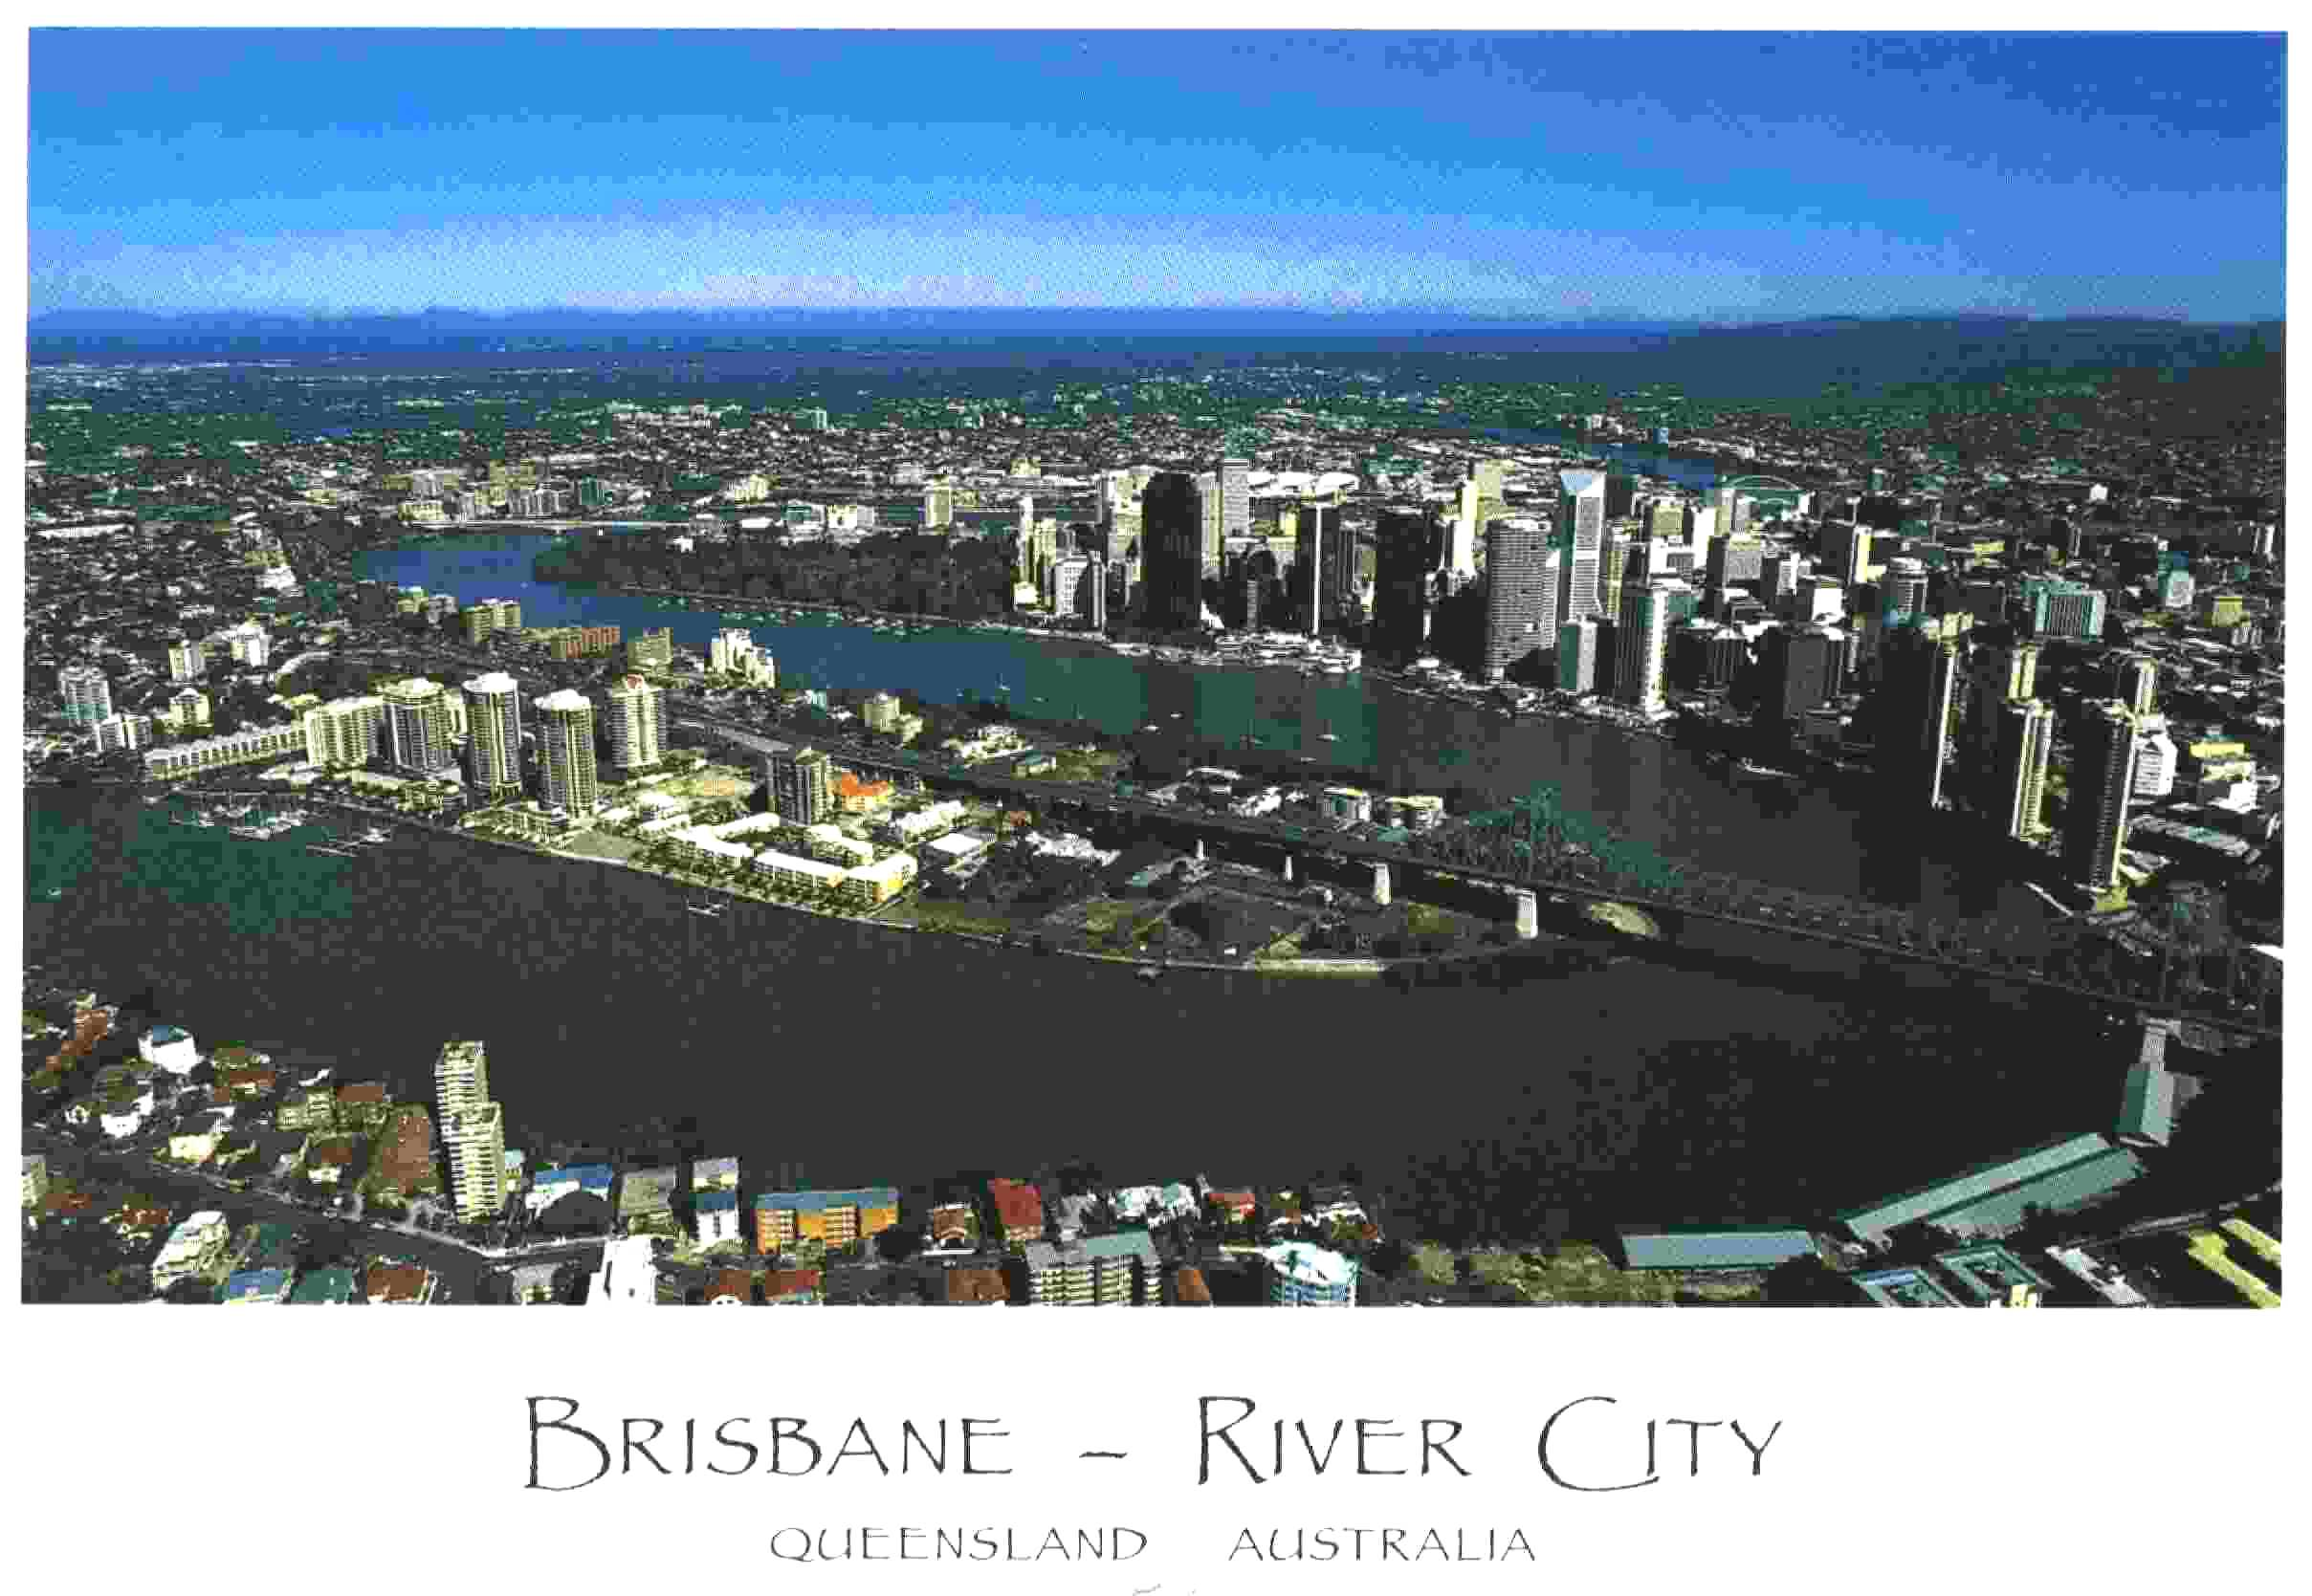 Australian Eastern Standard Time (AEST), UTC +10 No daylight saving time, same UTC offset all year The IANA time zone identifier for Brisbane is Australia/Brisbane.